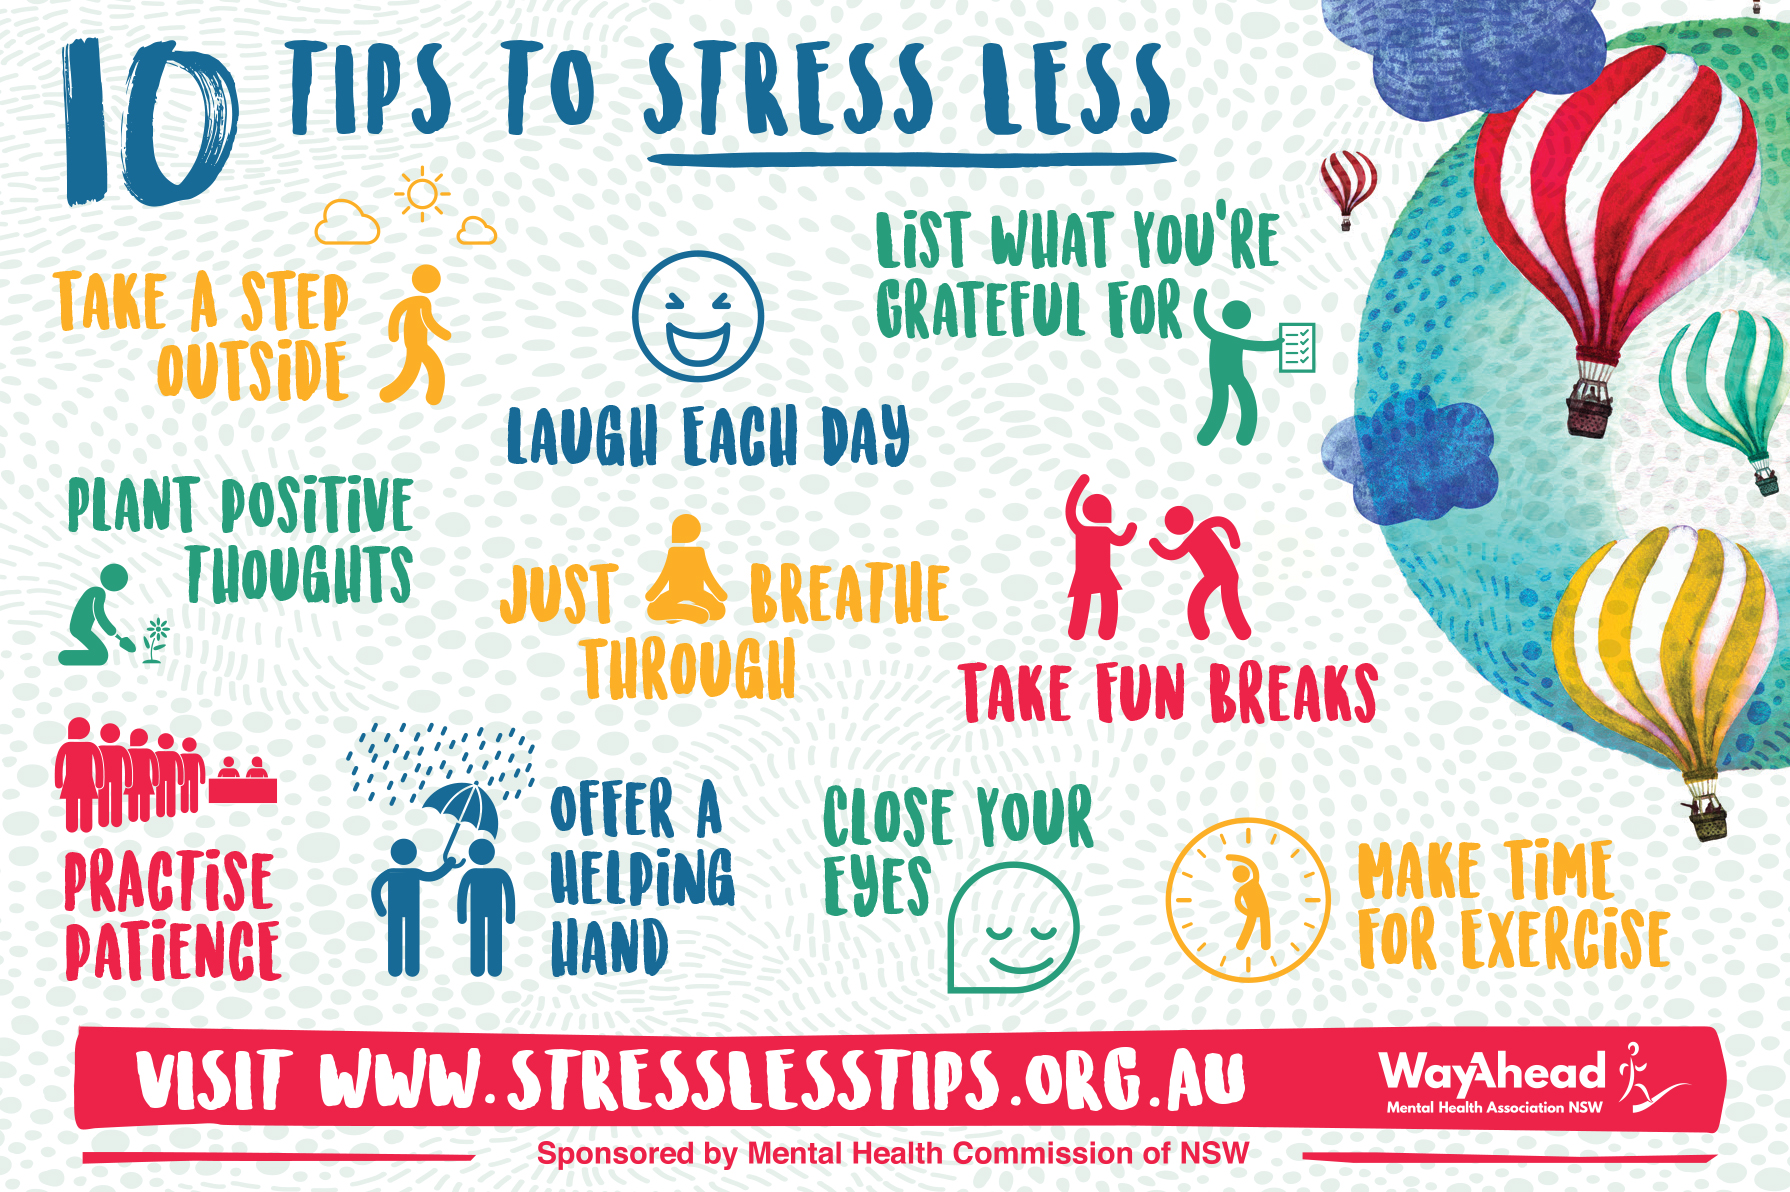 Stress Less Tips - WayAhead